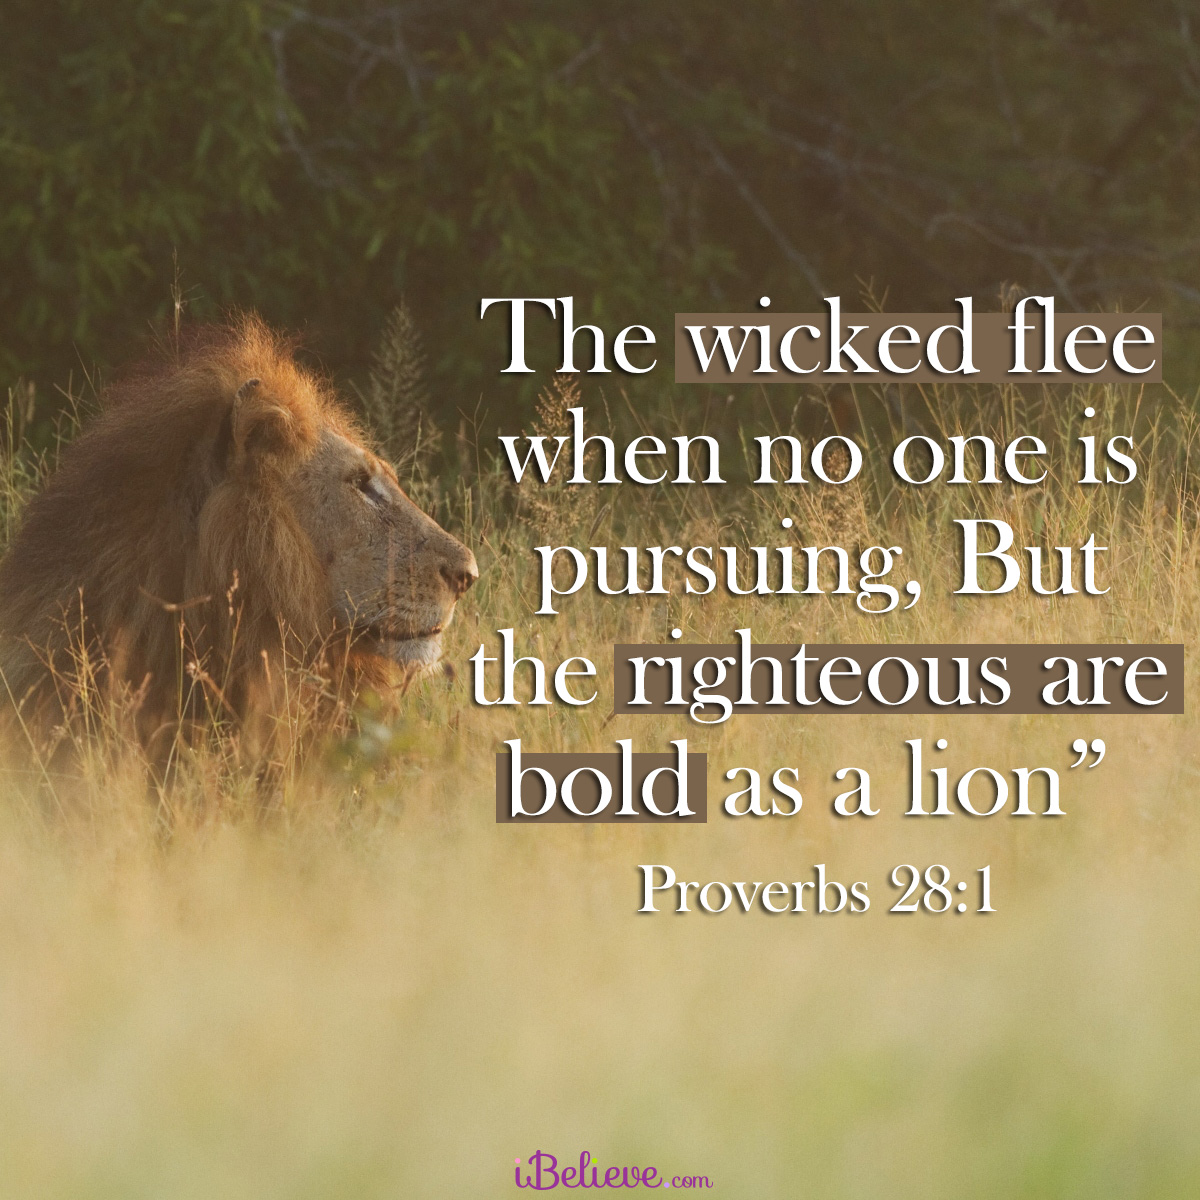 Proverbs 28:1, inspirational image